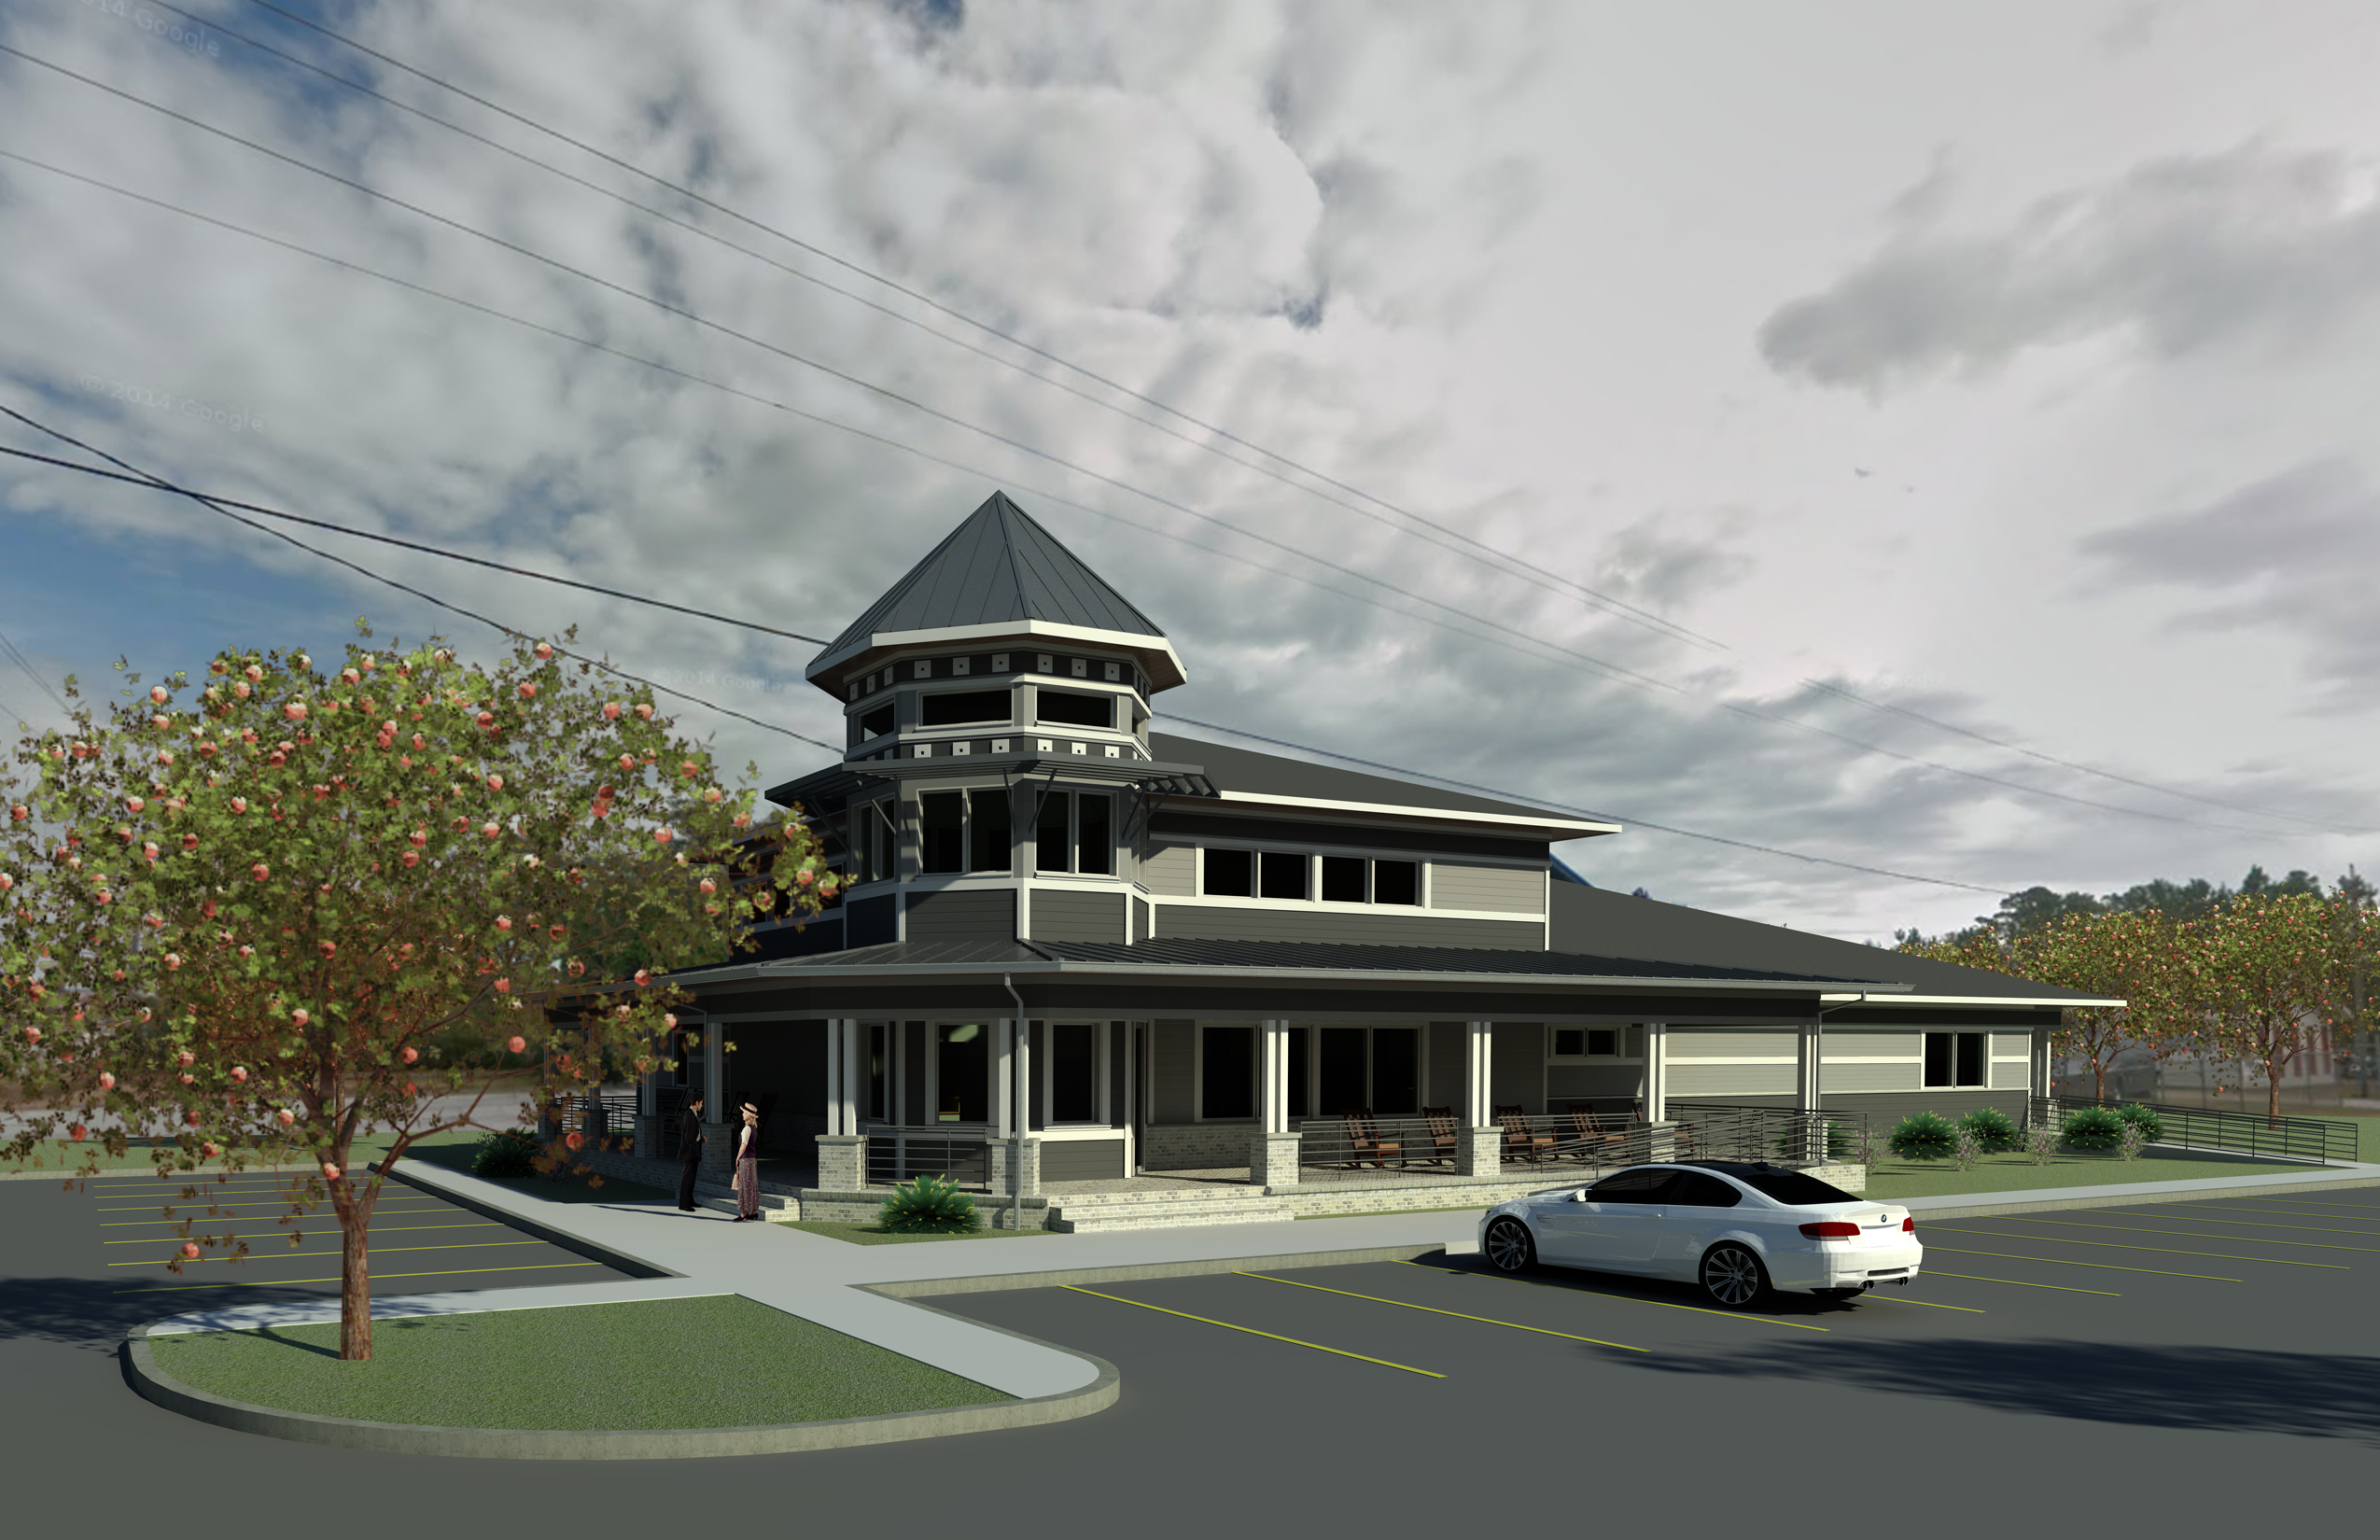 SANBORN ORTHODONTICS - RENDERED